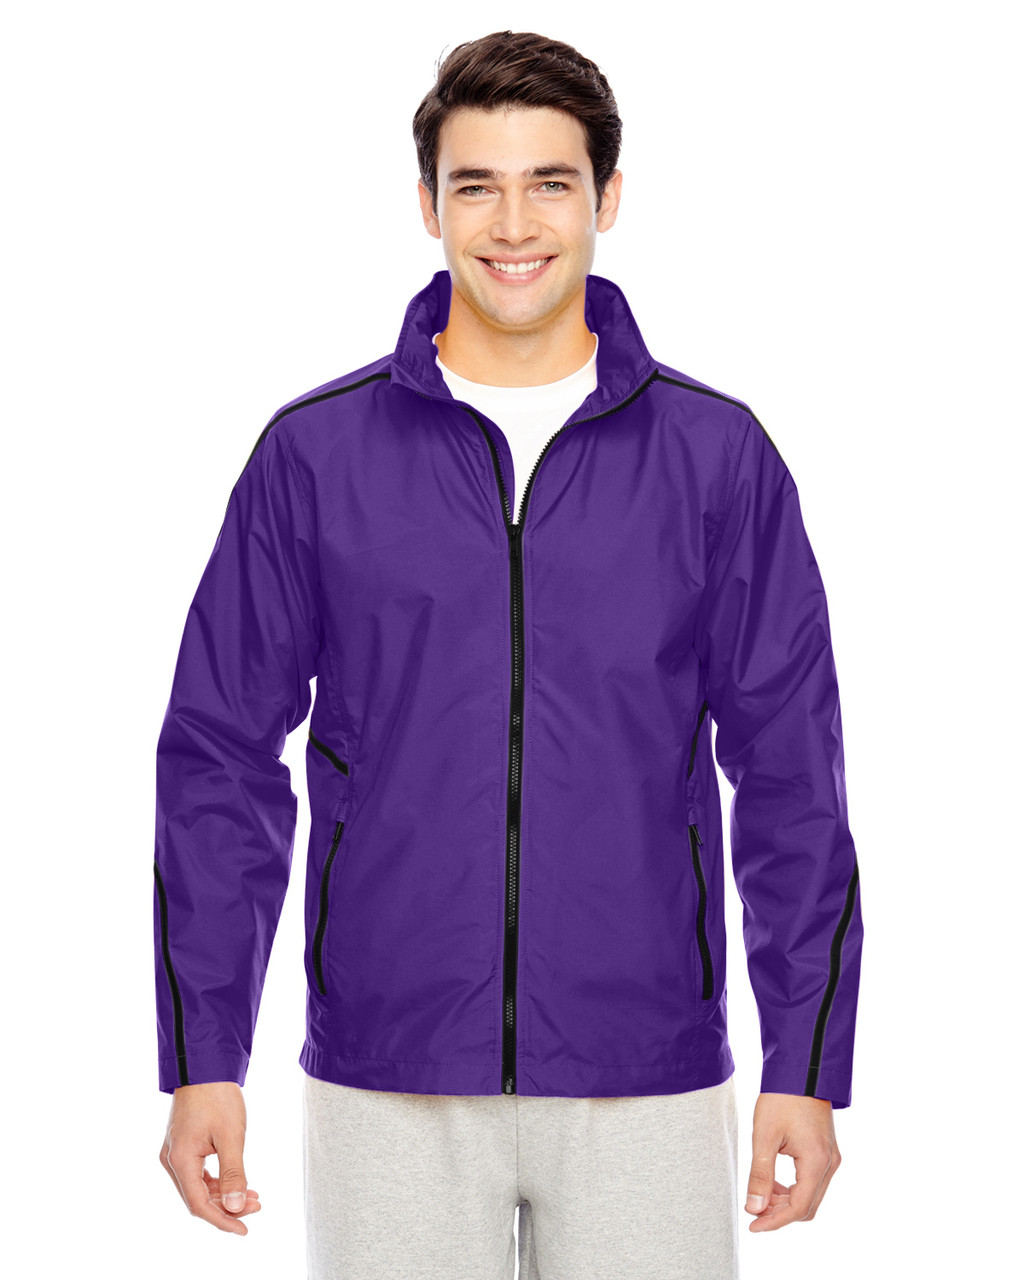 Purple - TT70 Team 365 Conquest Jacket with Mesh Lining | BlankClothing.ca